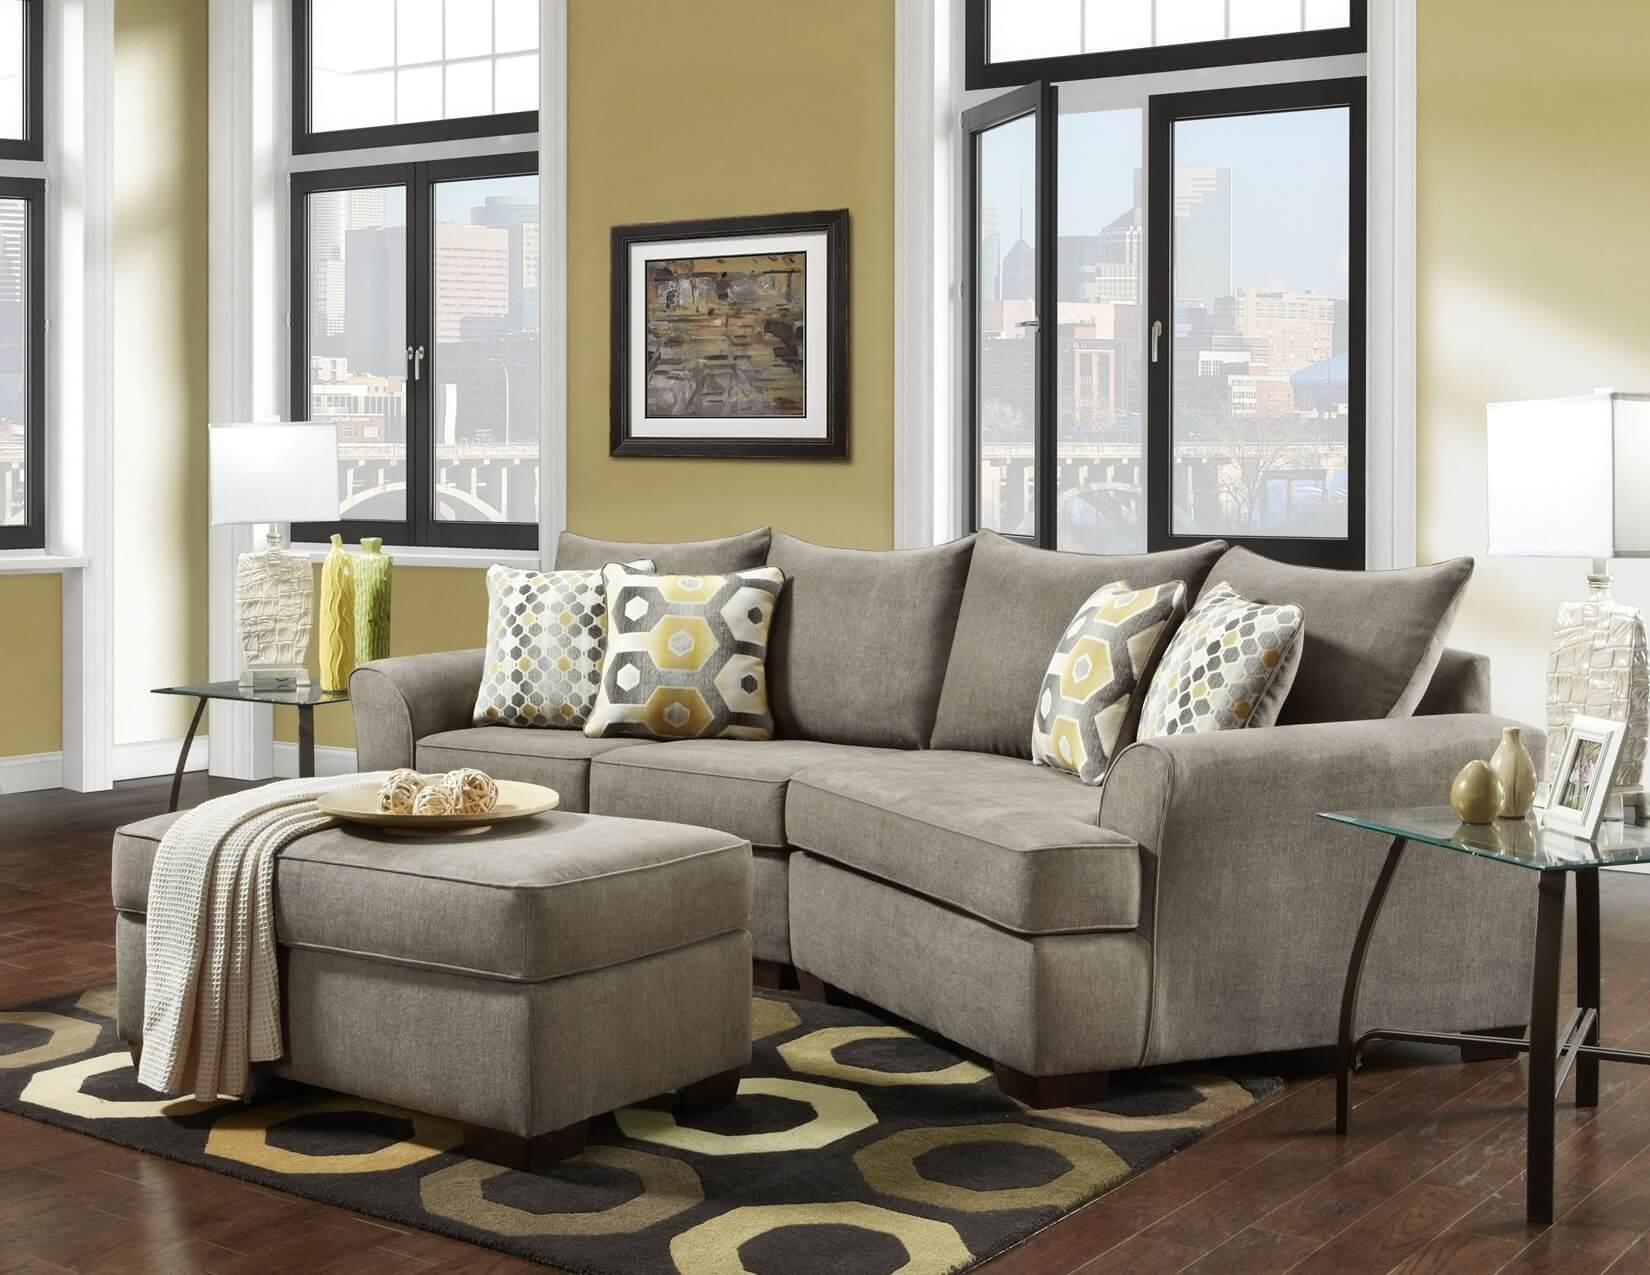 Essence Platinum 3 Pc Cuddler Sectional | Sectional Sofa Sets With Cuddler Sectional Sofa (View 12 of 15)